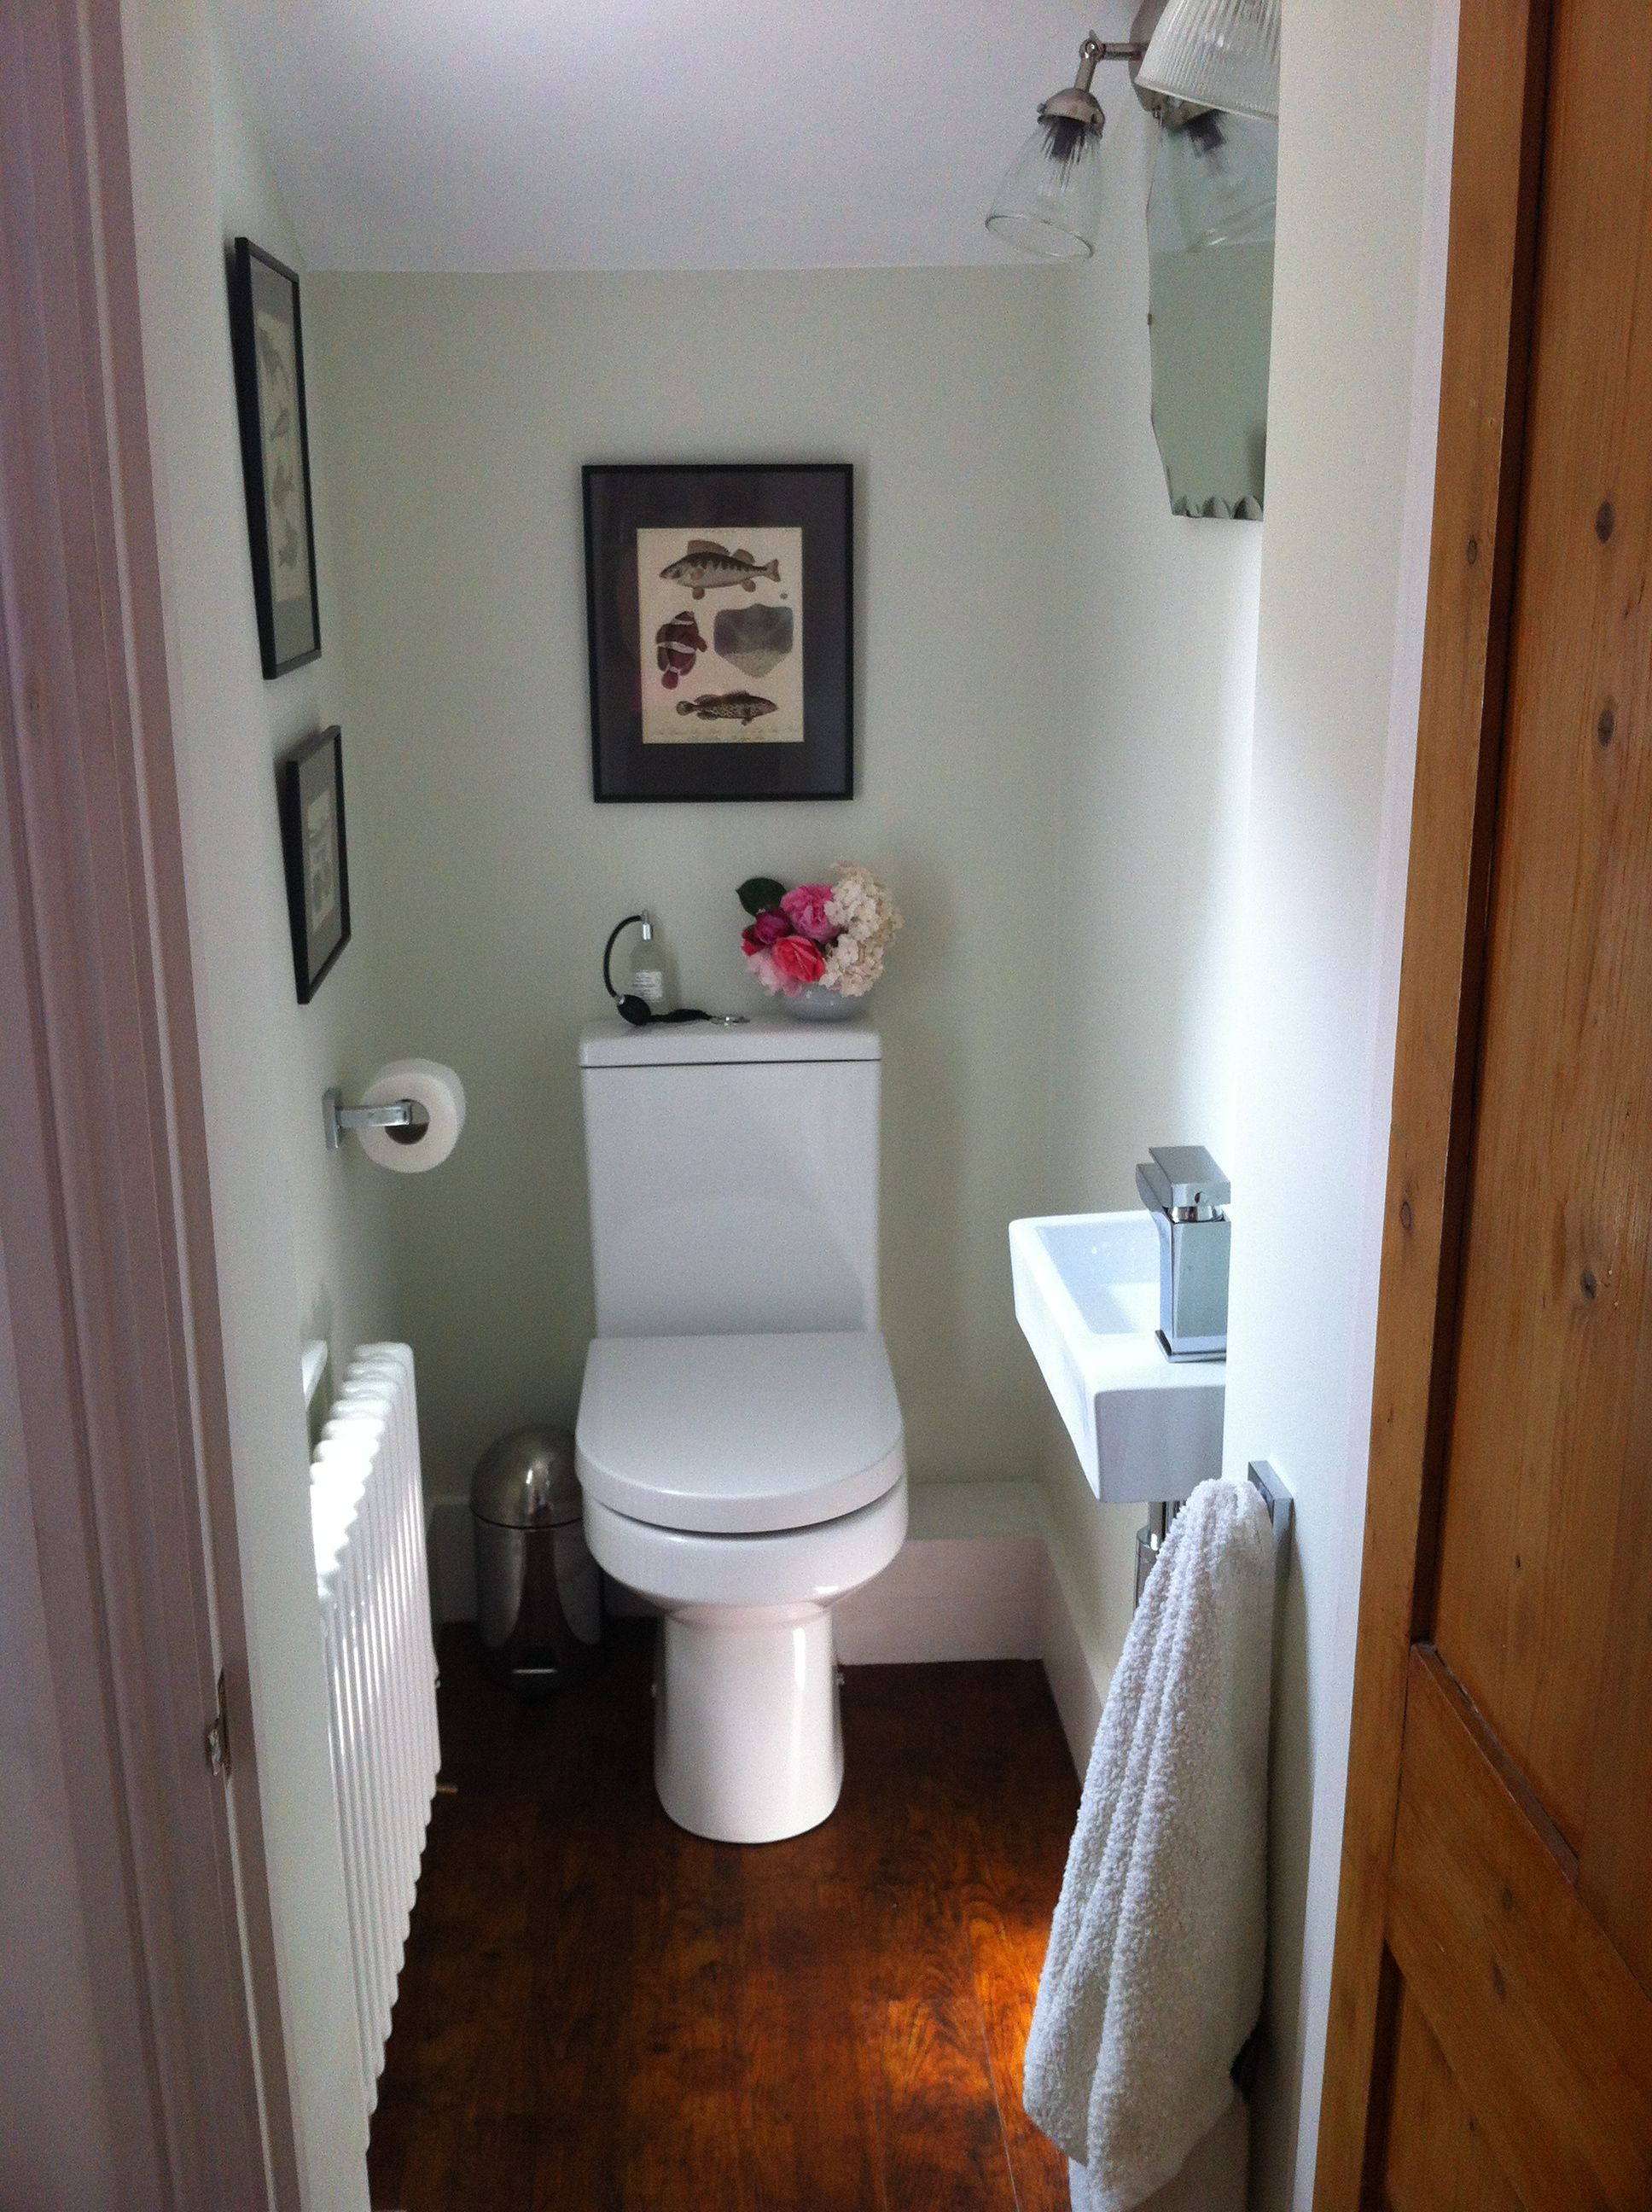 Cloakroom Ideas Images Small Toilet Wc Downstairs Loo Finished At Last